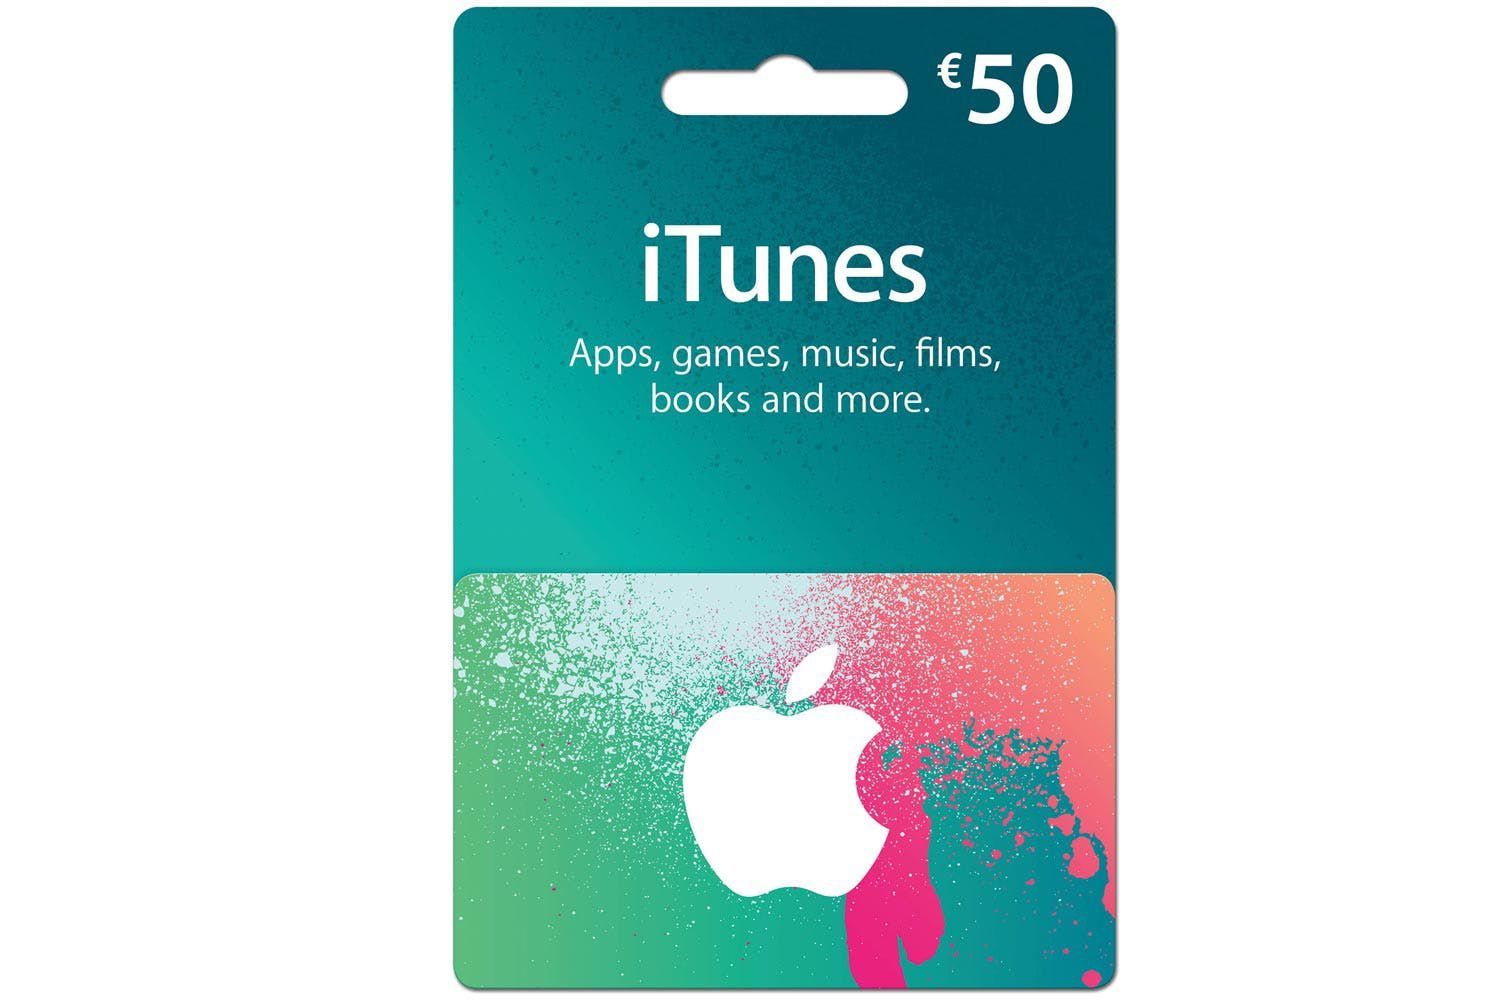 RIP iTunes Will It Effects Our Songs Playlist and Movies